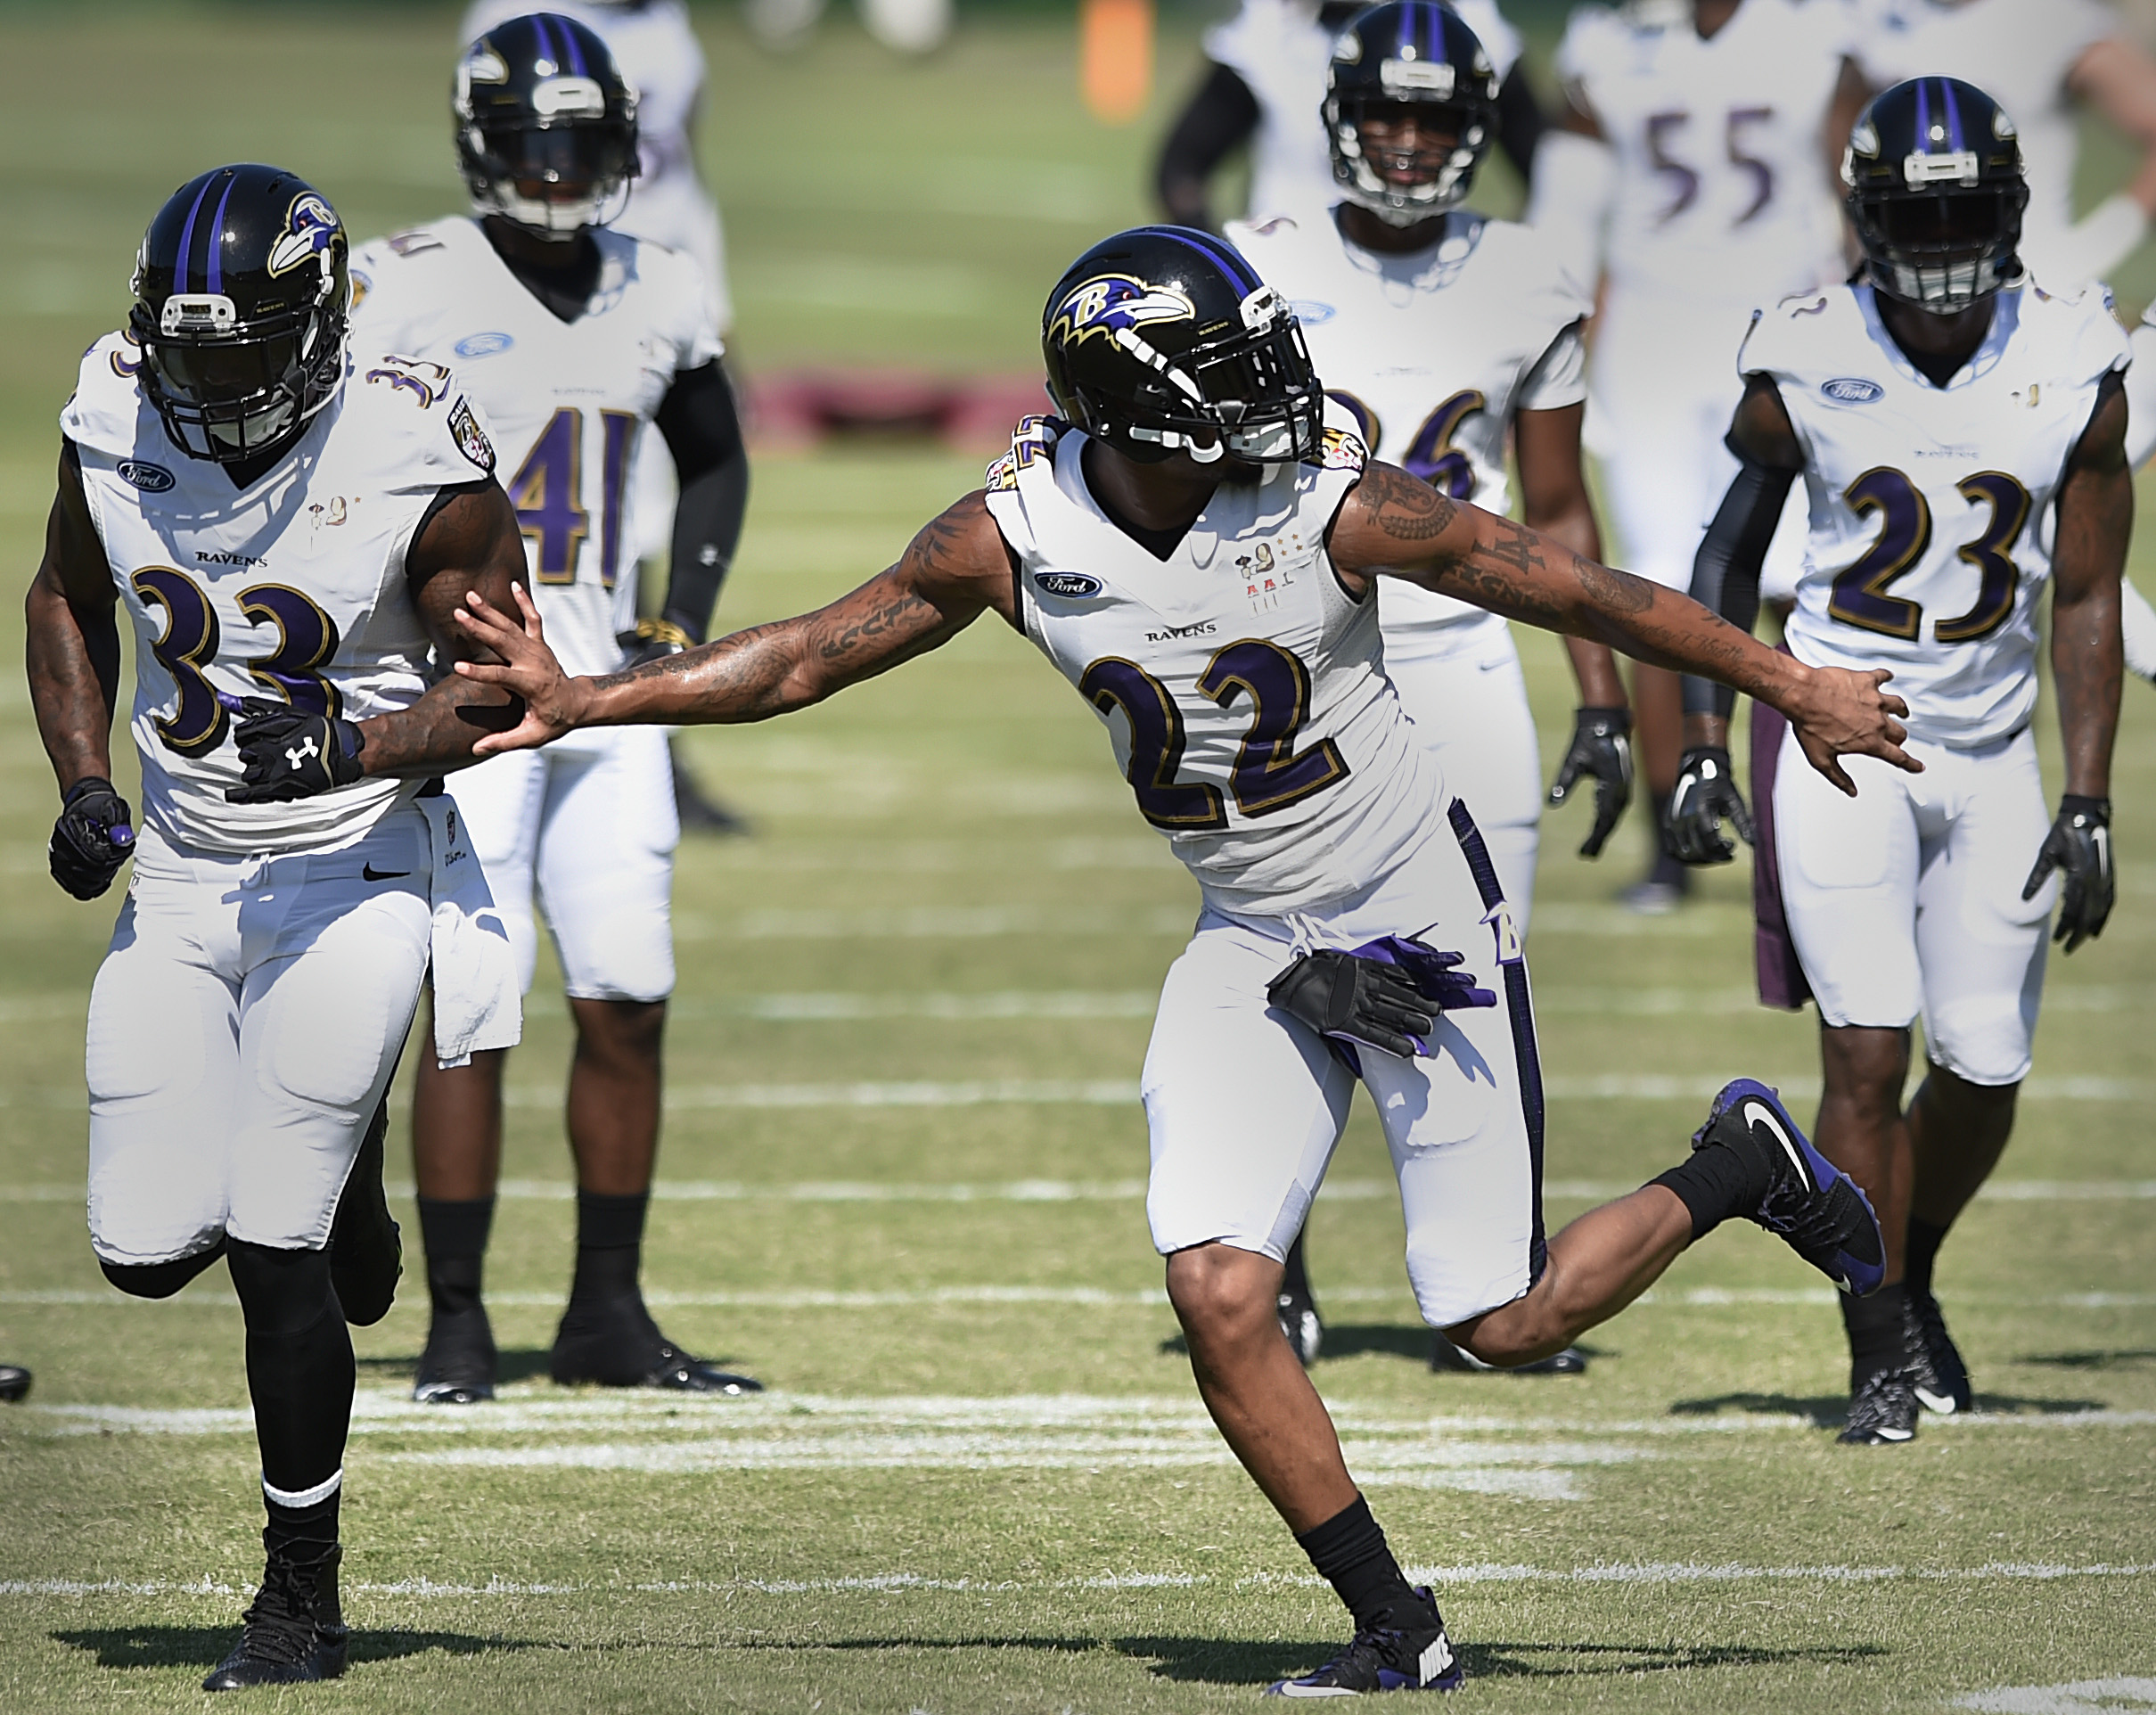 Baltimore Ravens corner back Jimmy Smith (22), runs a drill during NFL football training camp, Friday, July 31, 2015, in Owings Mills, Md. (AP Photo/Gail Burton)